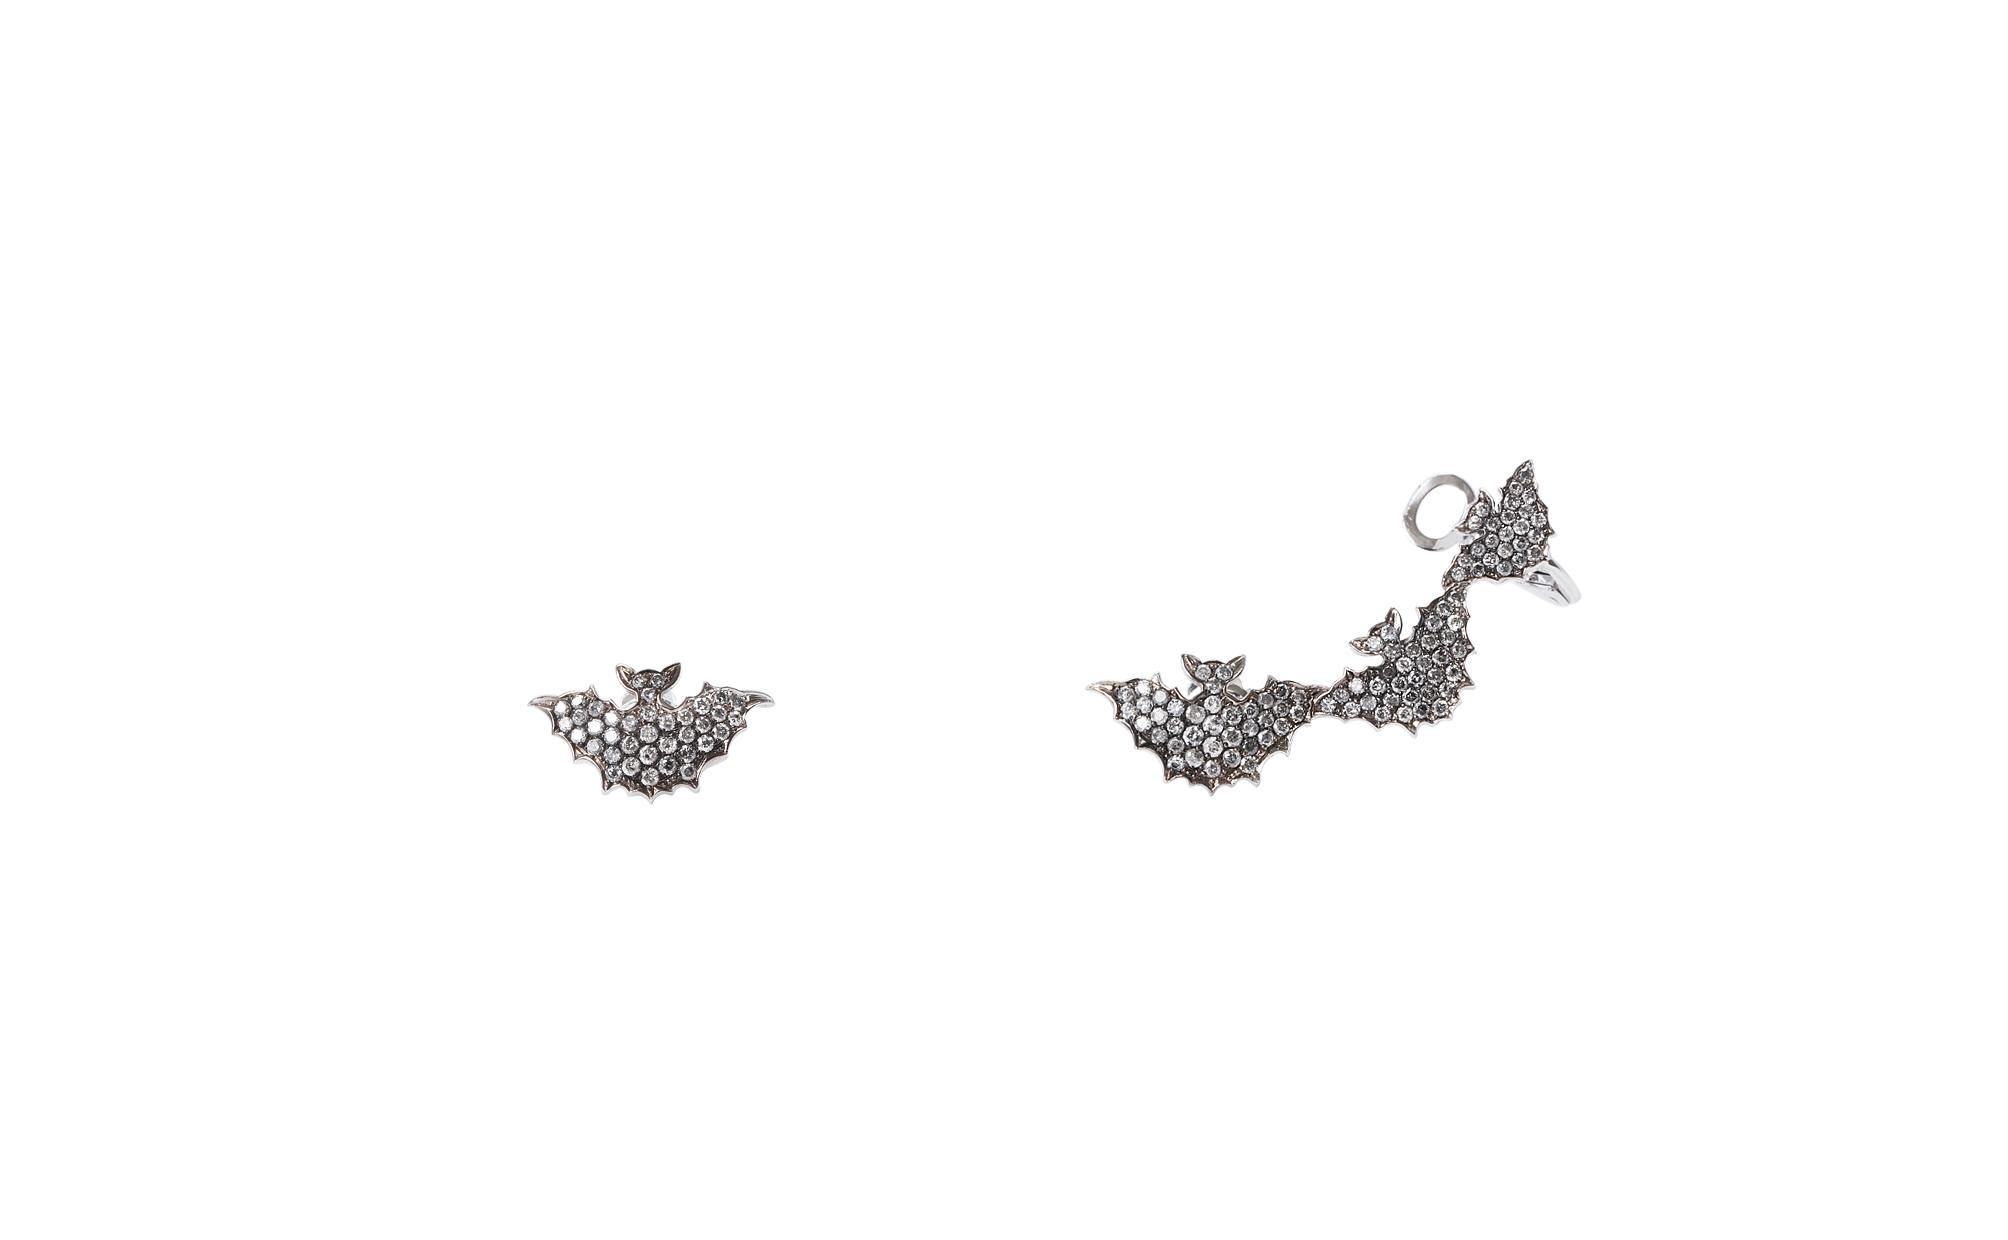 3 + 1 bats gold earrings with pavé grey diamonds